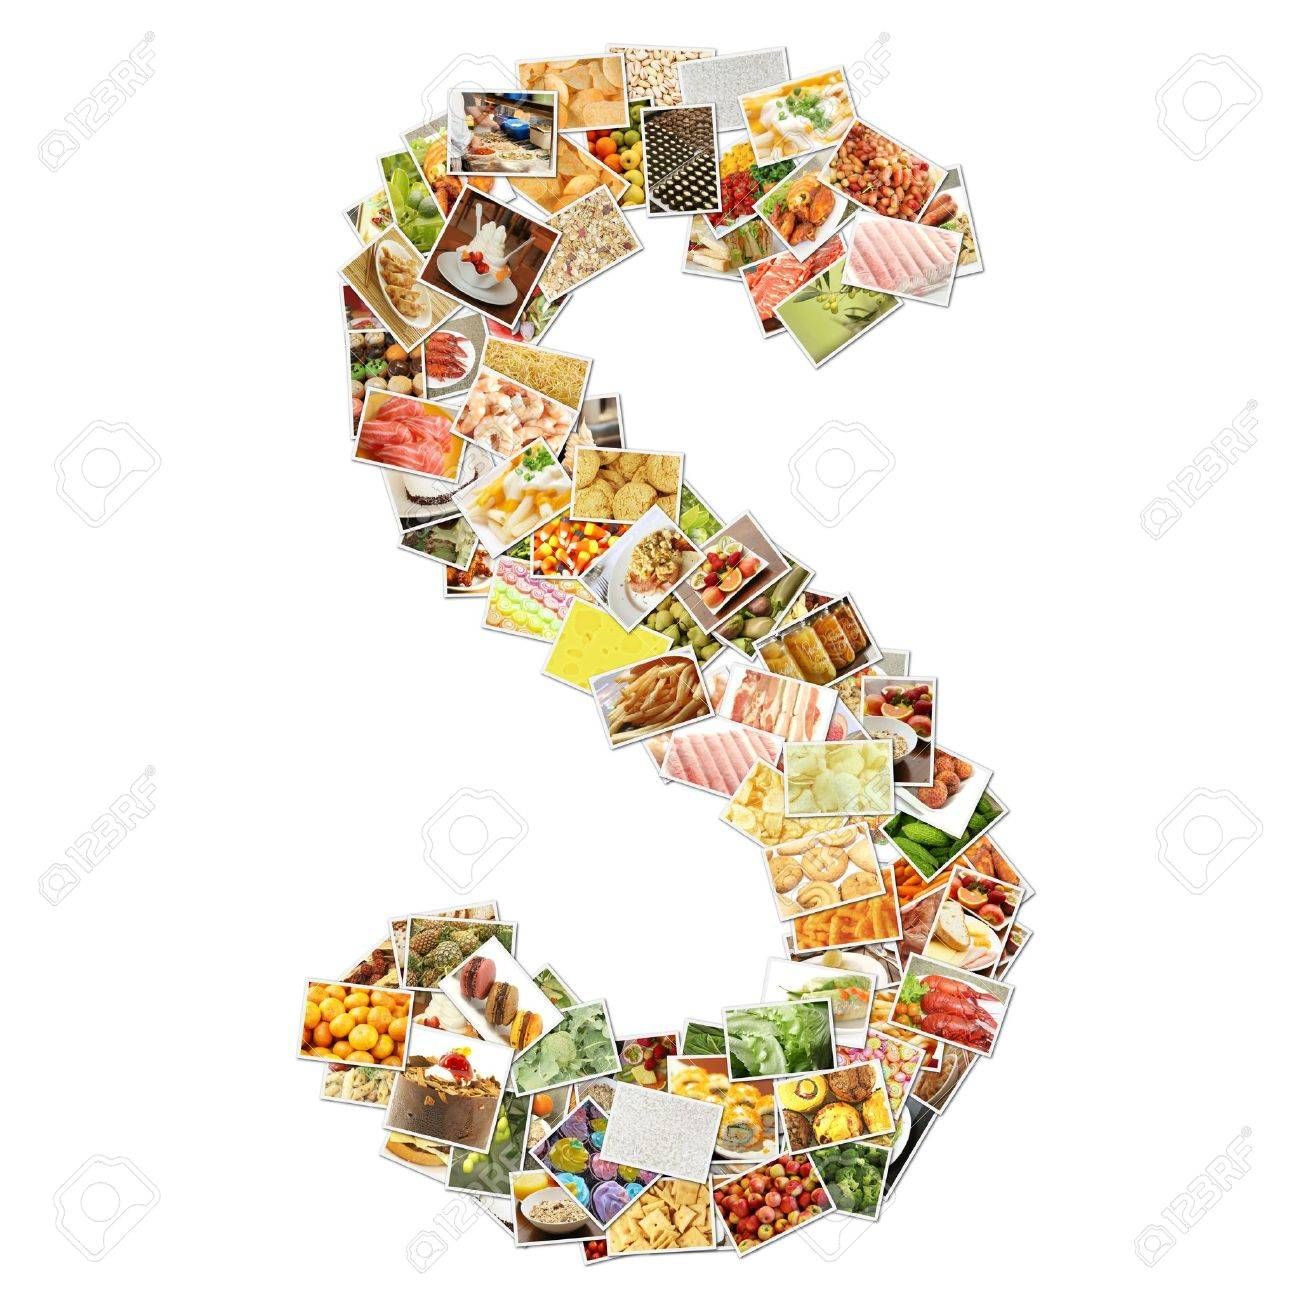 Letter S with Food Collage Concept Art Stock Photo - 9691836